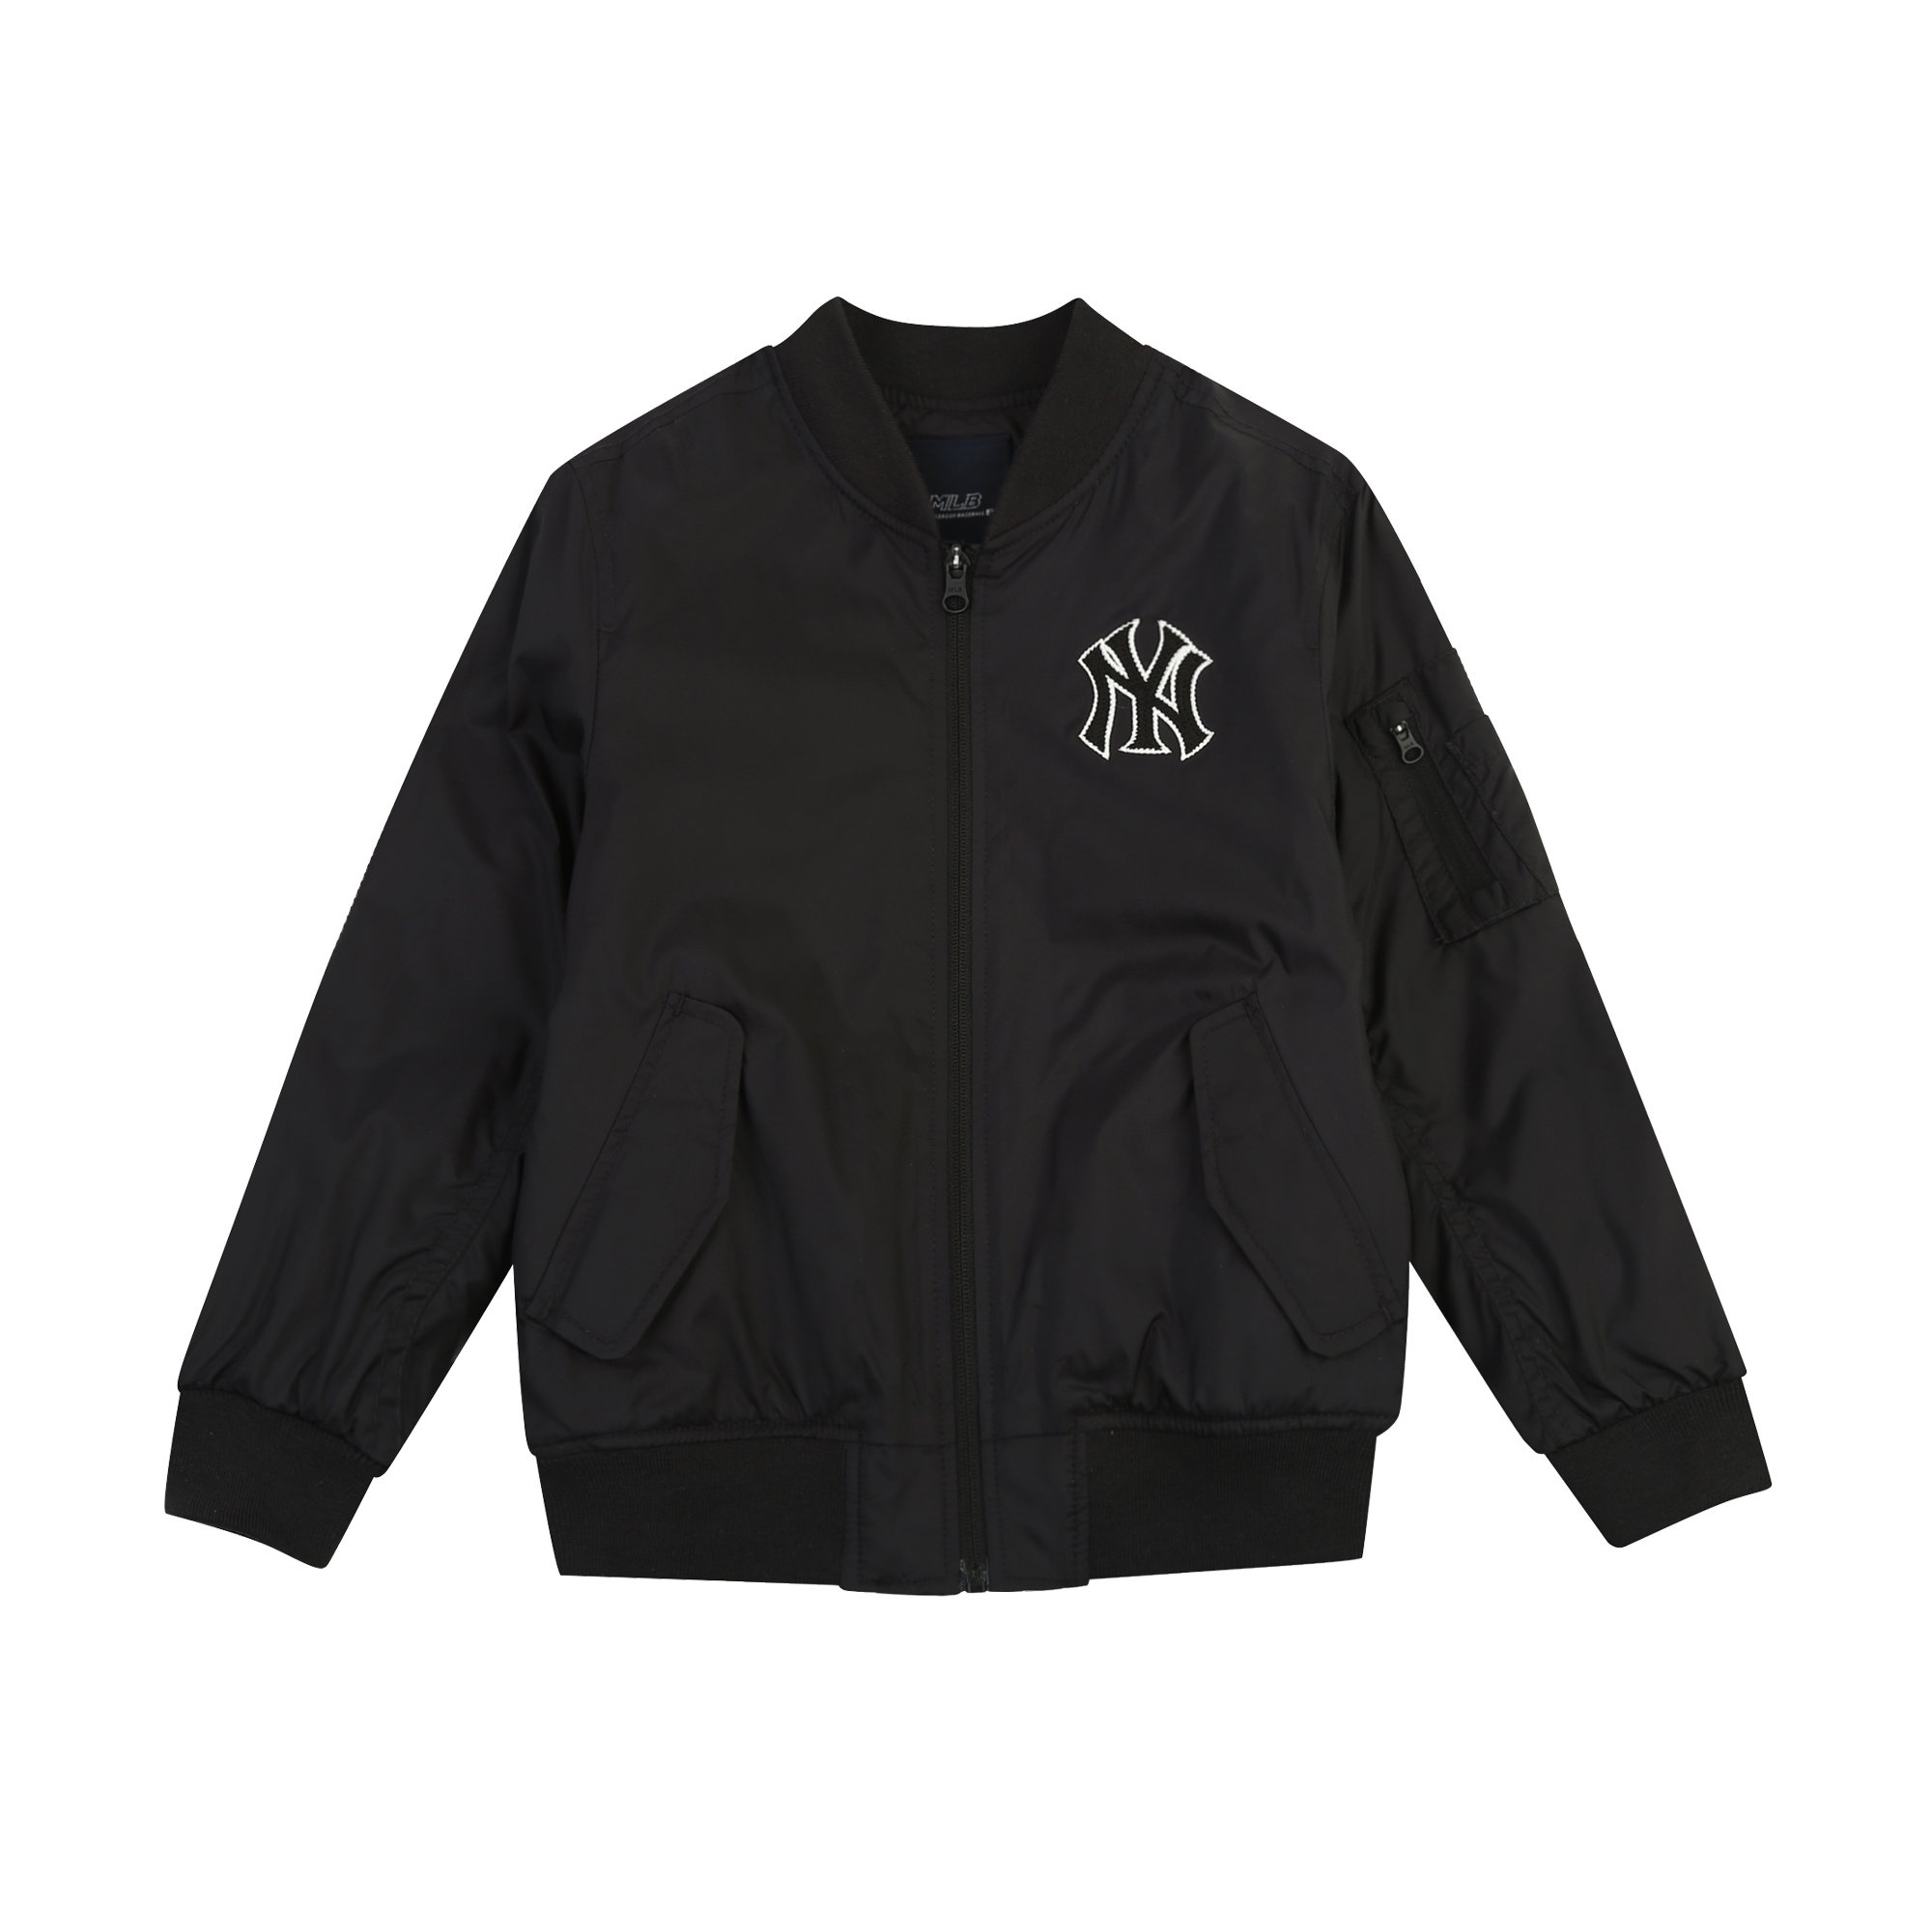 NEW YORK YANKEES UNISEX RISING JACKET